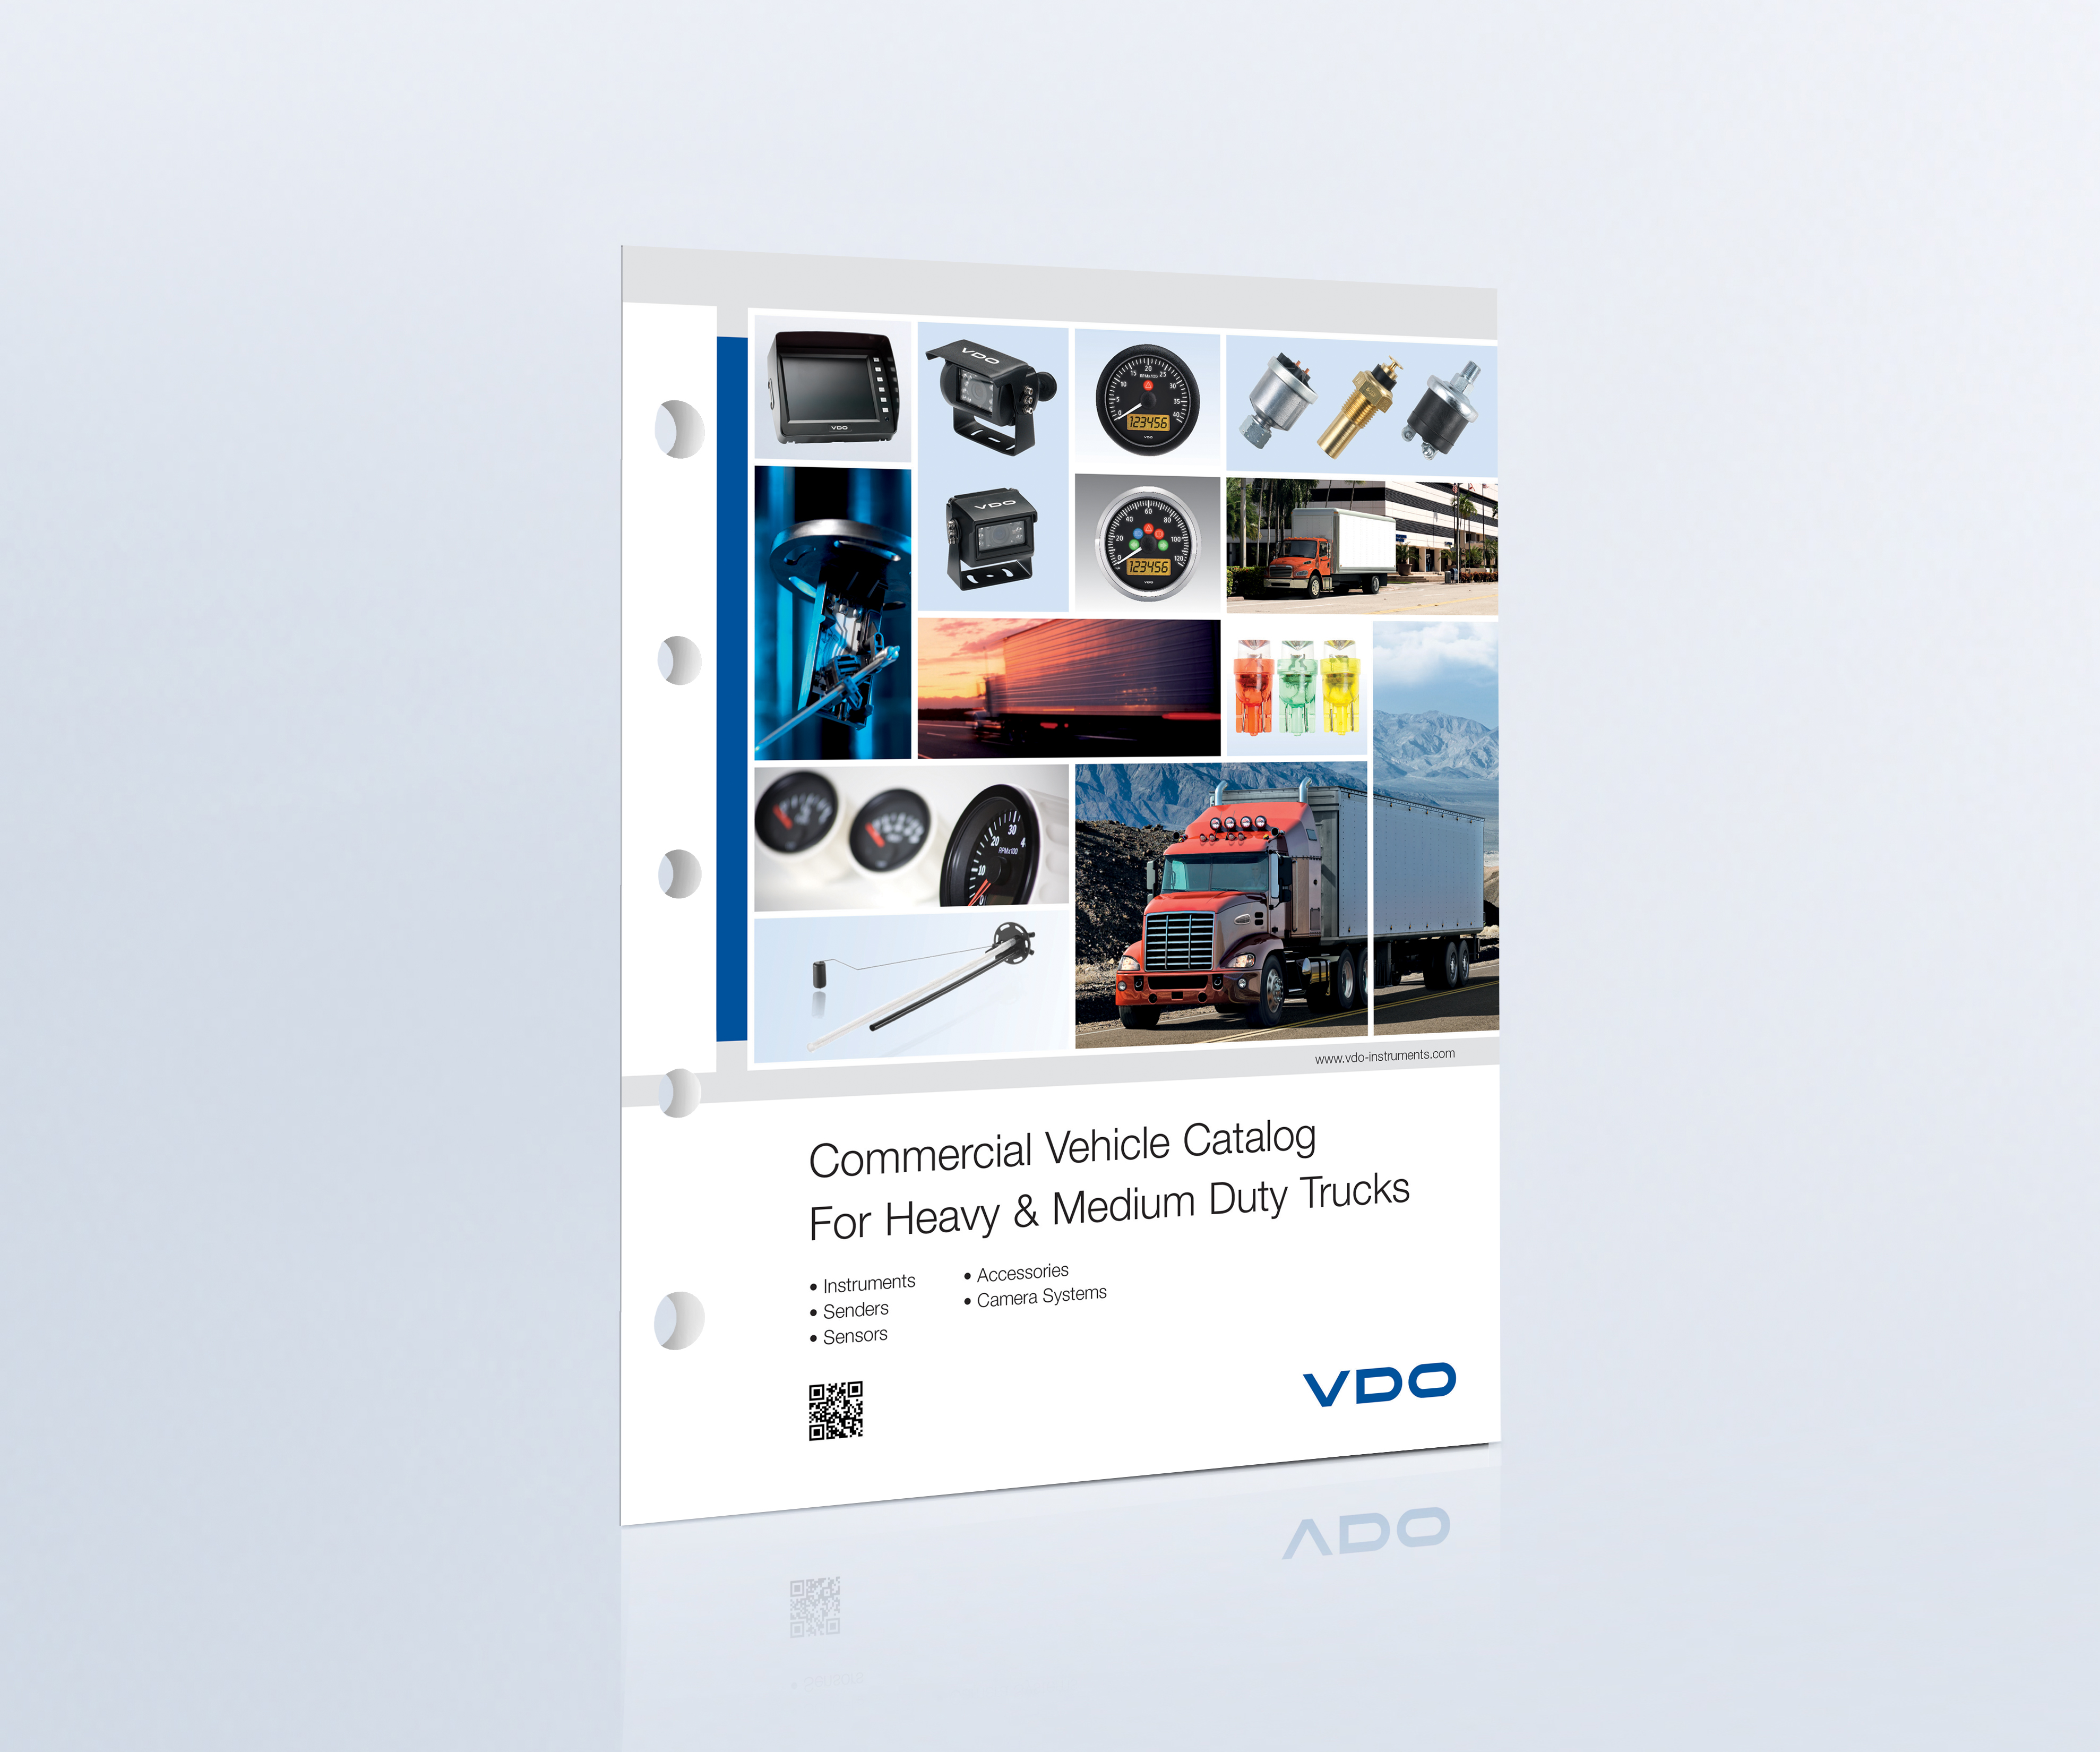 VDO Instrumentation Catalog features the latest gauges and accessories for heavy-duty trucks